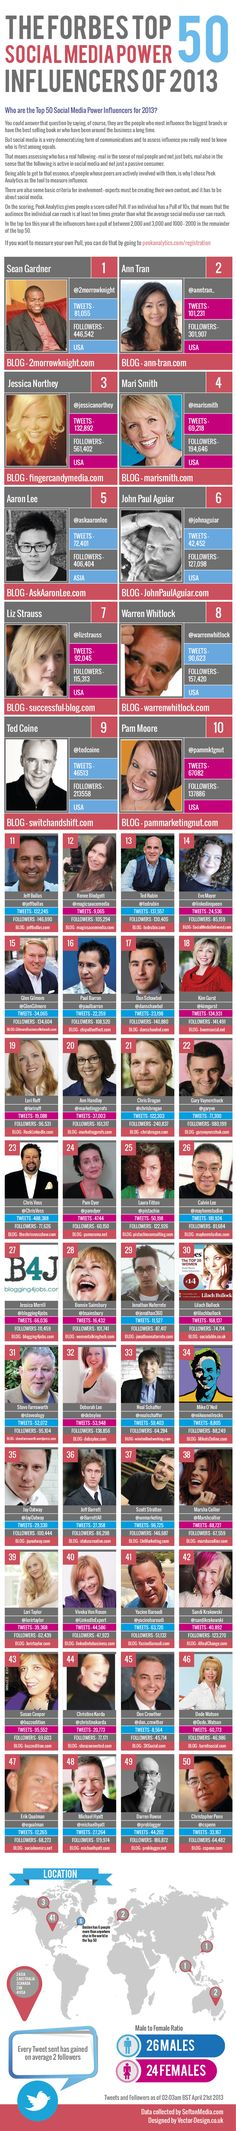 Forbes Top 50 Social Media Power Influencers 2013